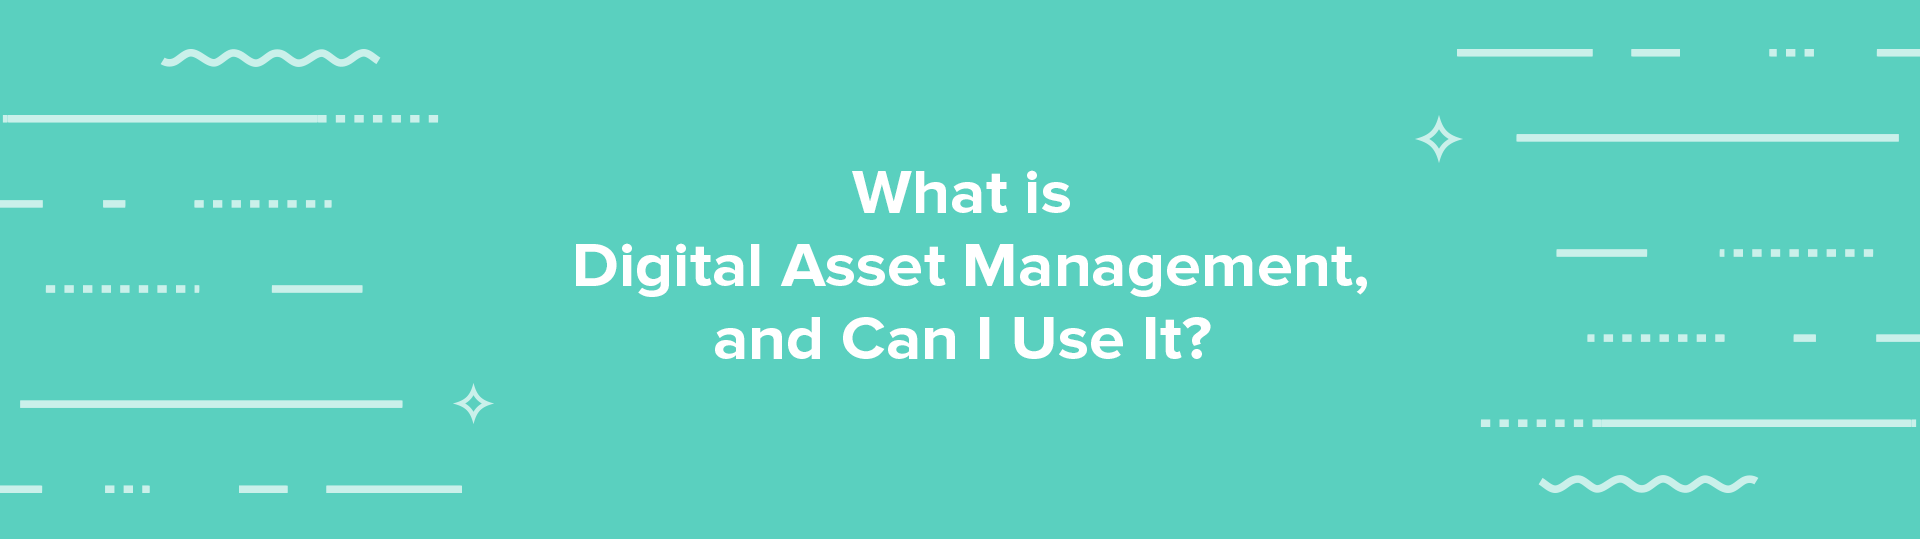 Digital Asset Management - How to use it.